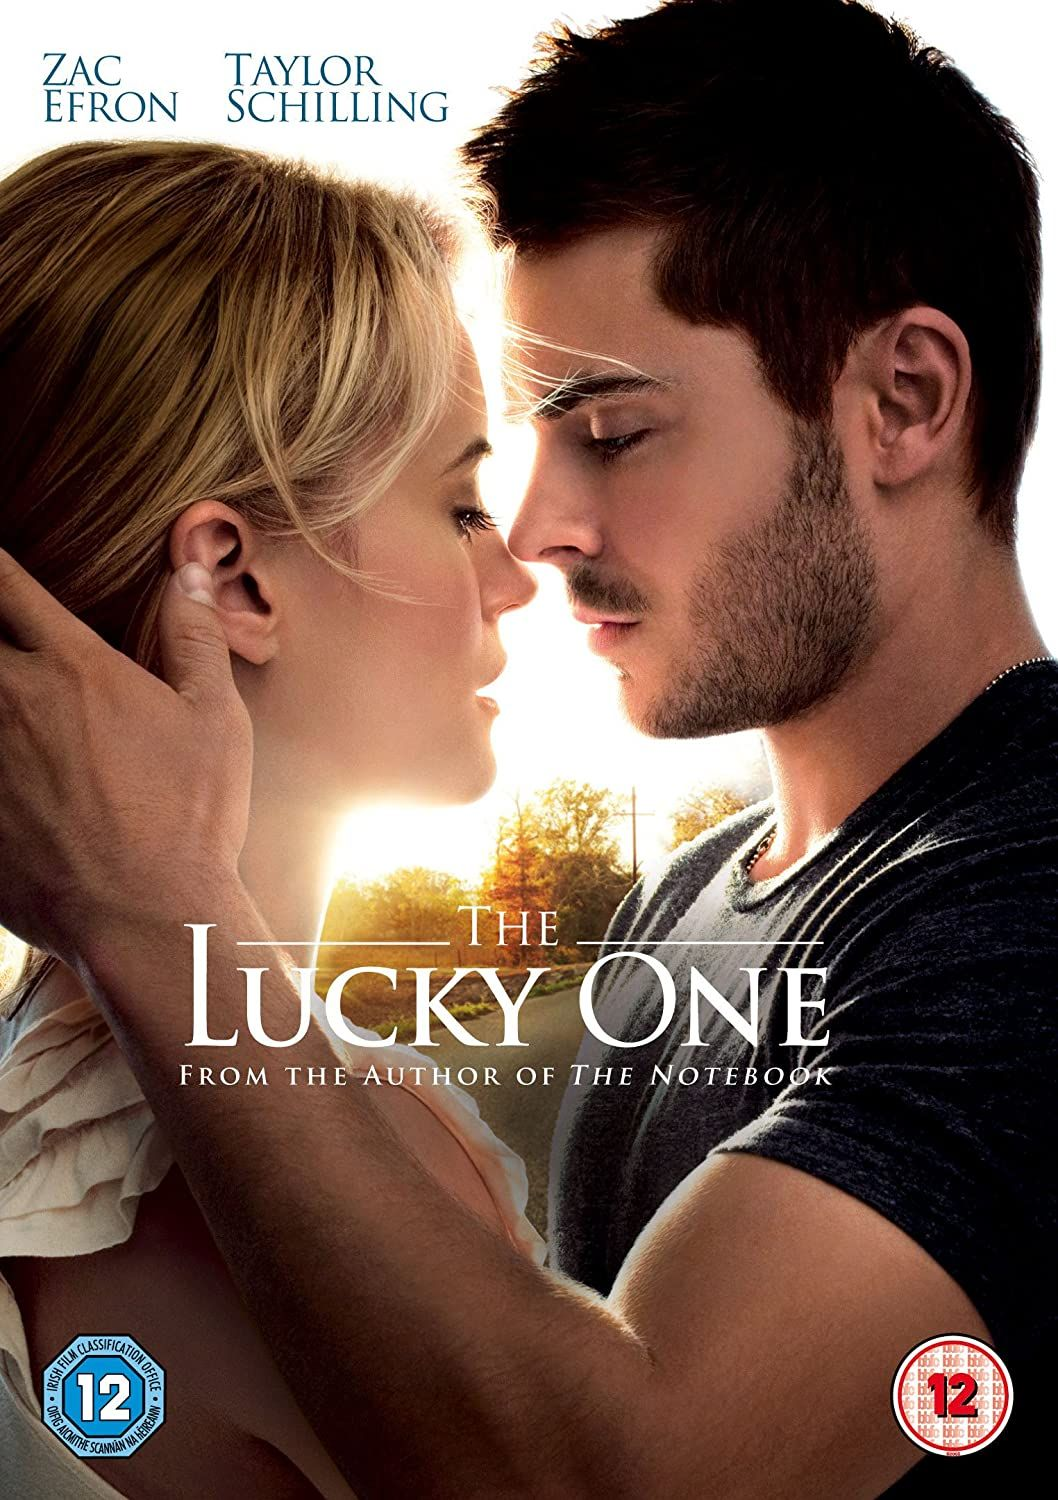 The Lucky One The Lucky One Movie Romantic Movie Scenes The Lucky One